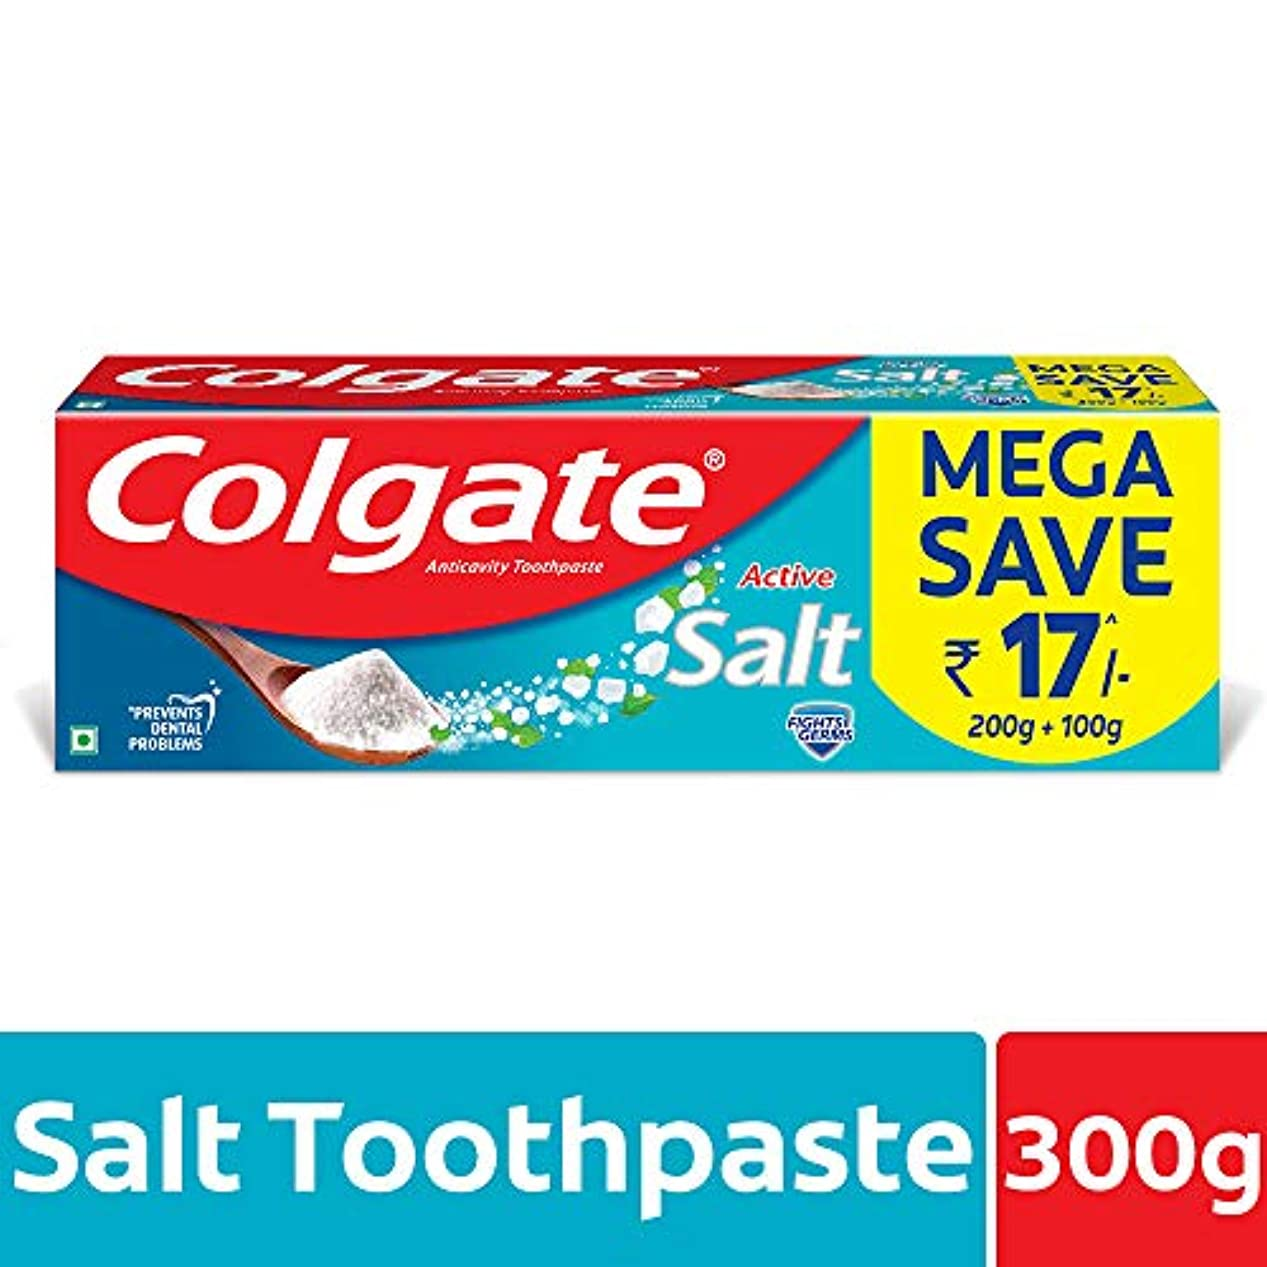 酒寛容実現可能Colgate Active Salt Toothpaste, 300gm(200gm + 100gm)